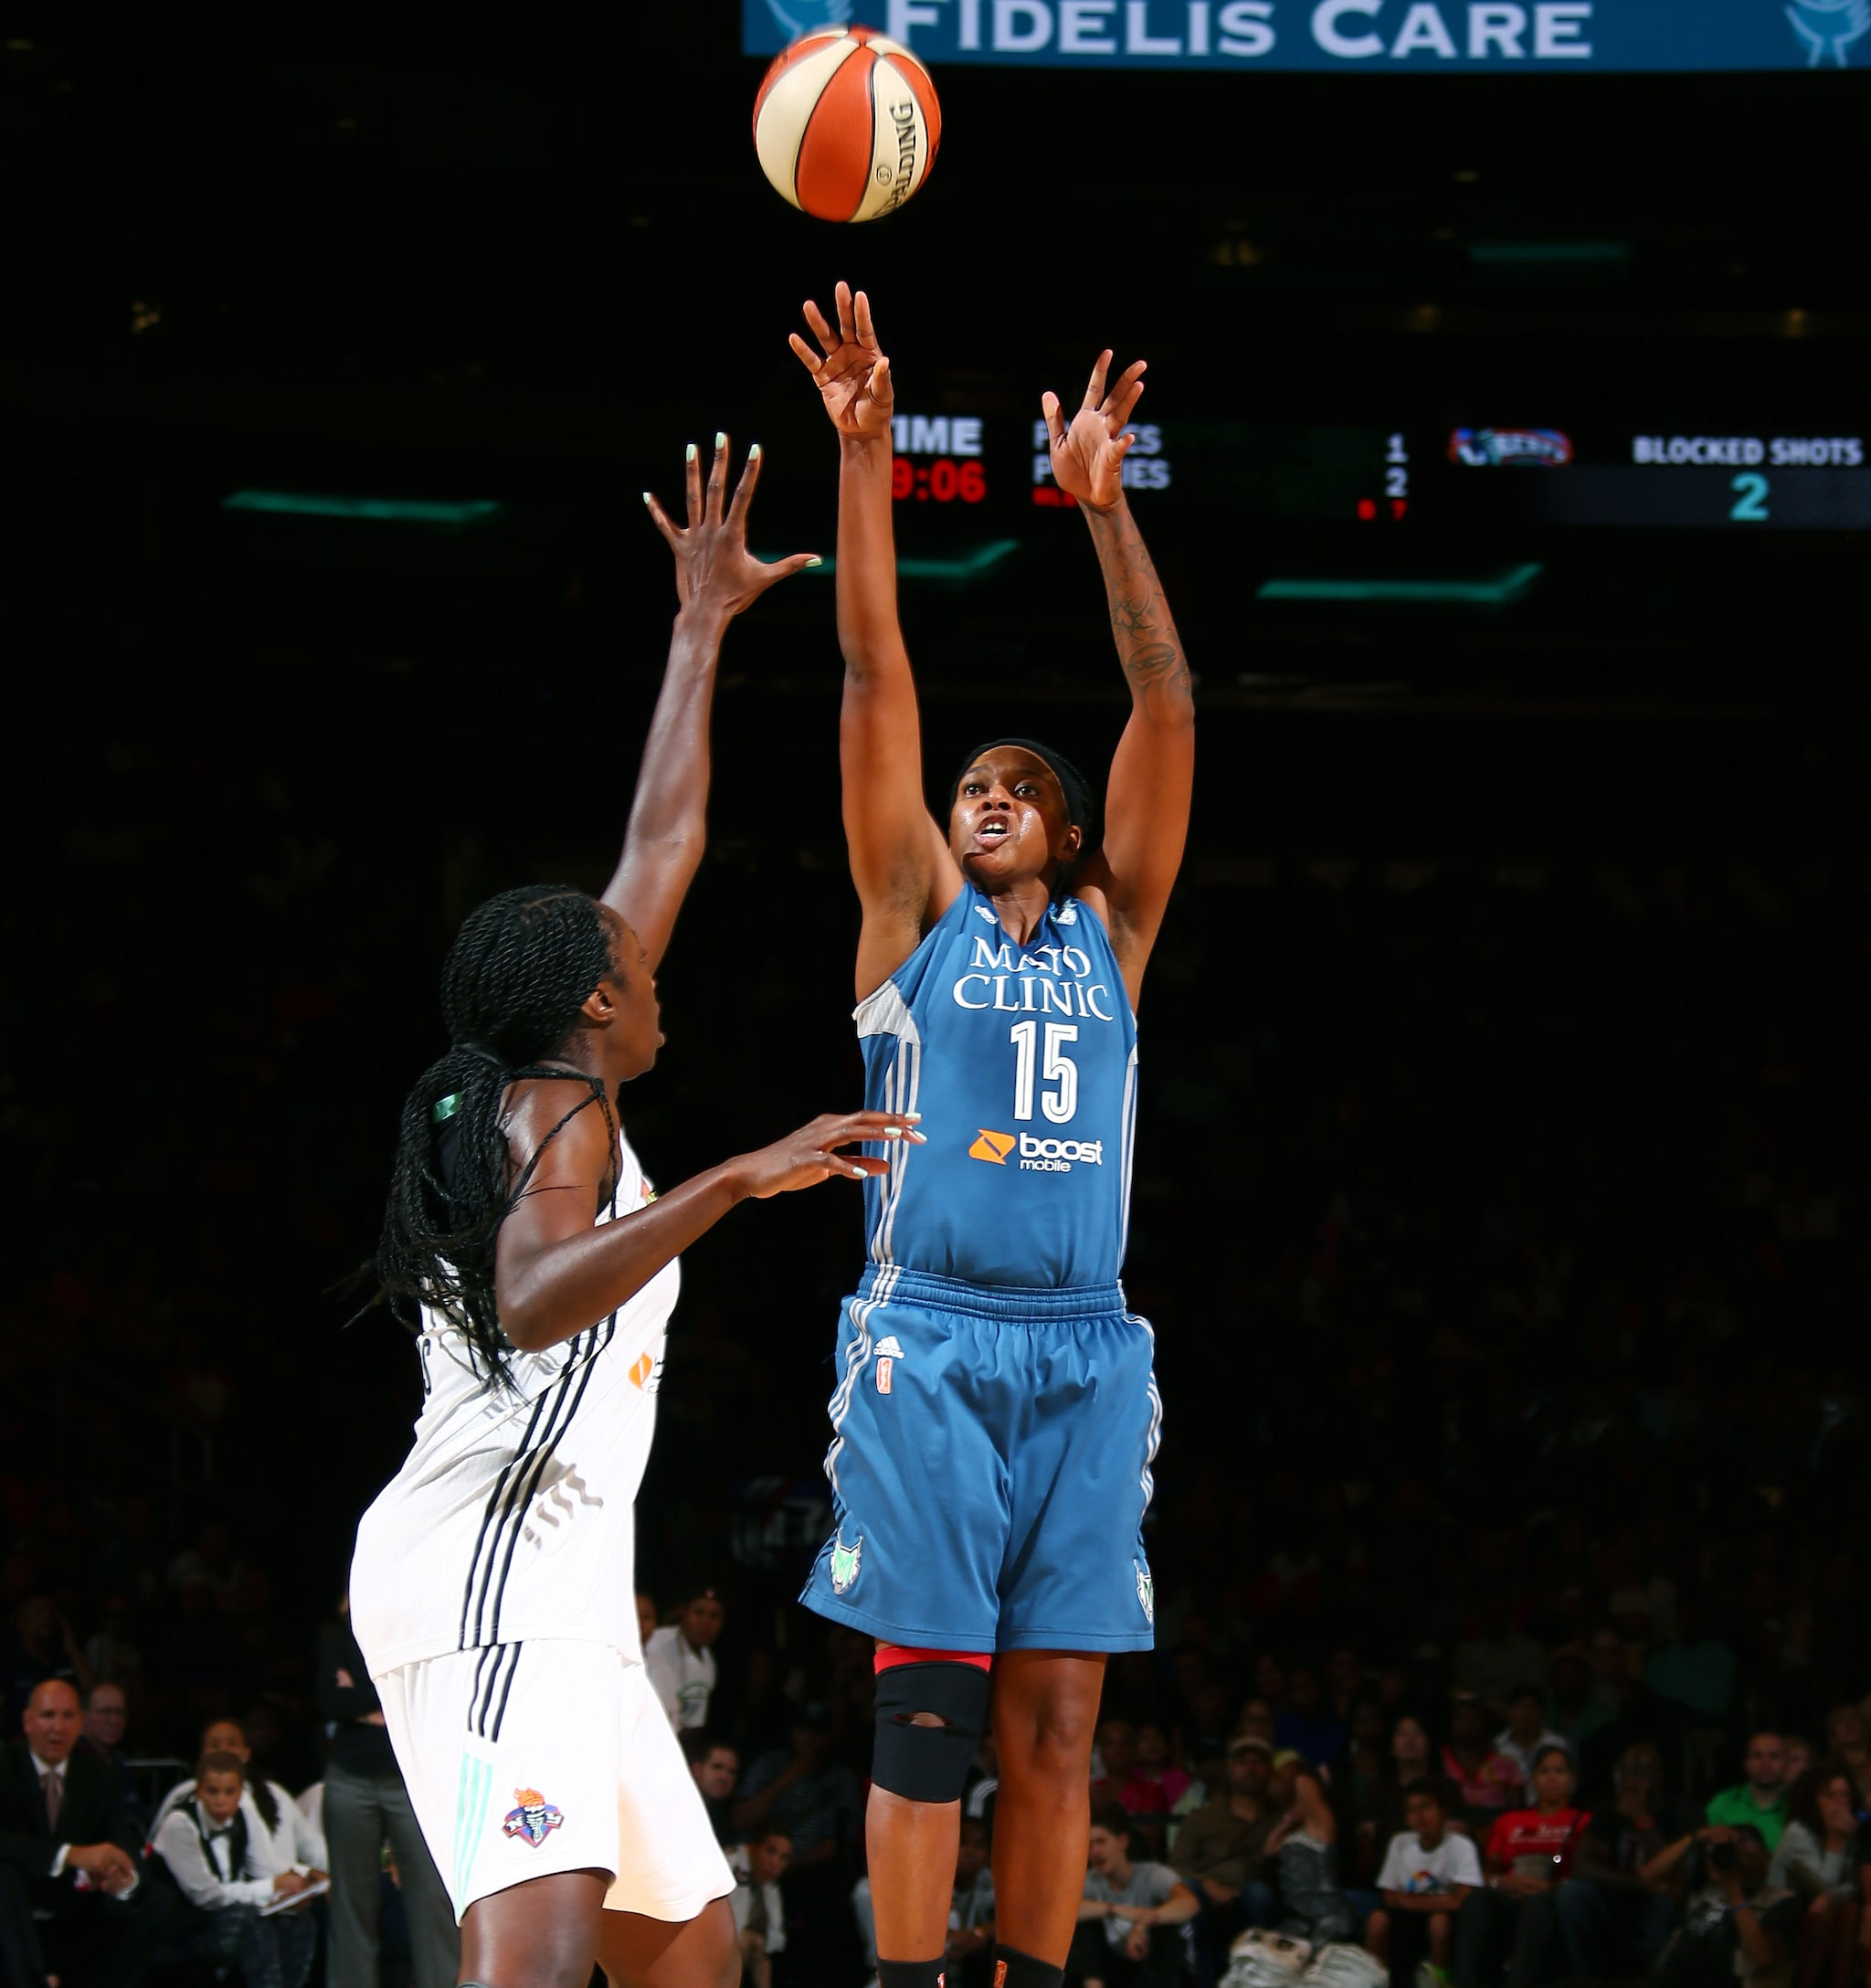 Lynx forward Asjha Jones played big minutes off the bench for Minnesota, playing 21 minutes and finishing with seven points, two rebounds and two assists in Minnesota's 81-68 loss to the New York Liberty.